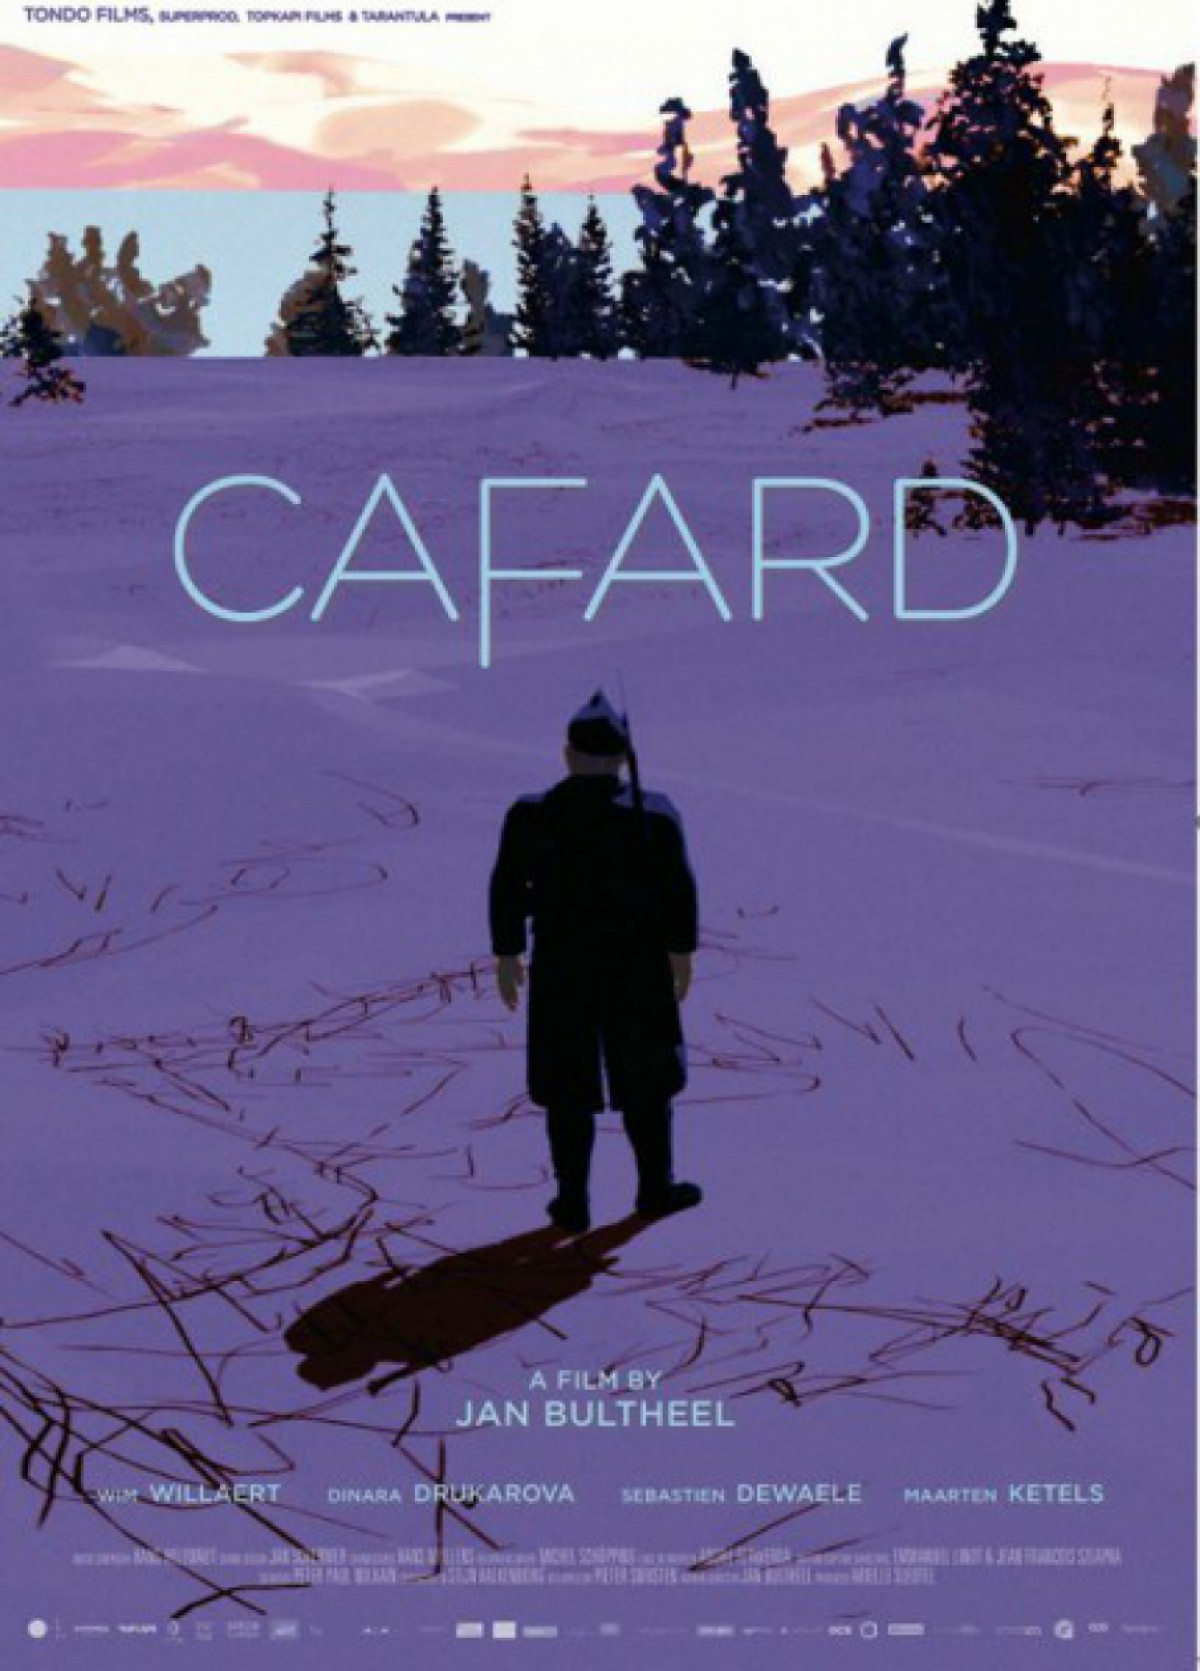 Cafard - Orchestrated and Conducted by Michel Bisceglia